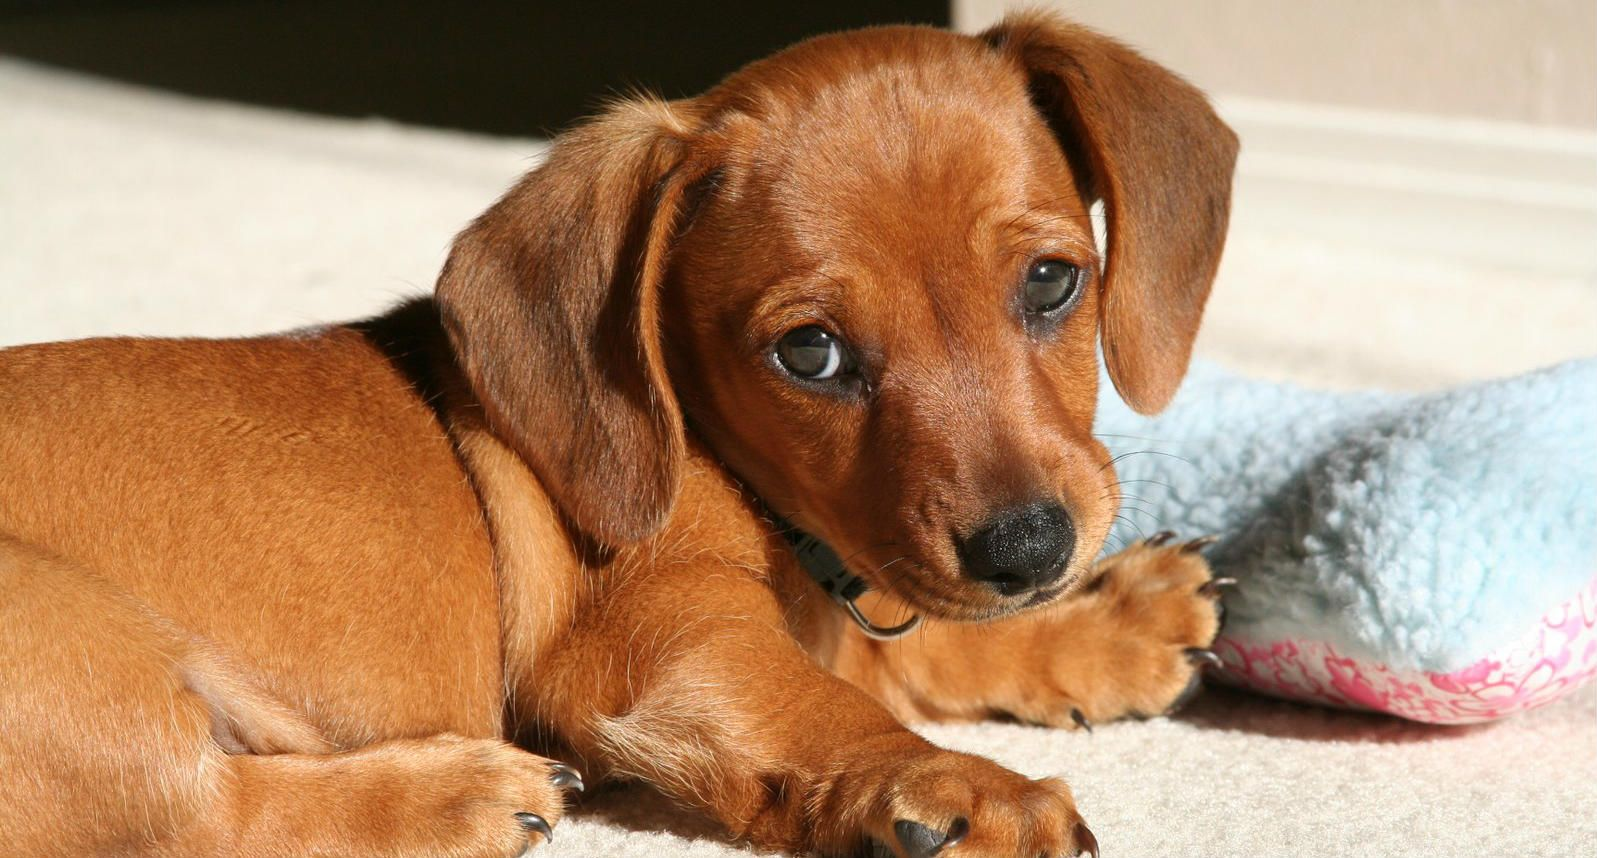 Pix For Gt Light Brown Wiener Dog Wiener Dog Aggressive Dog